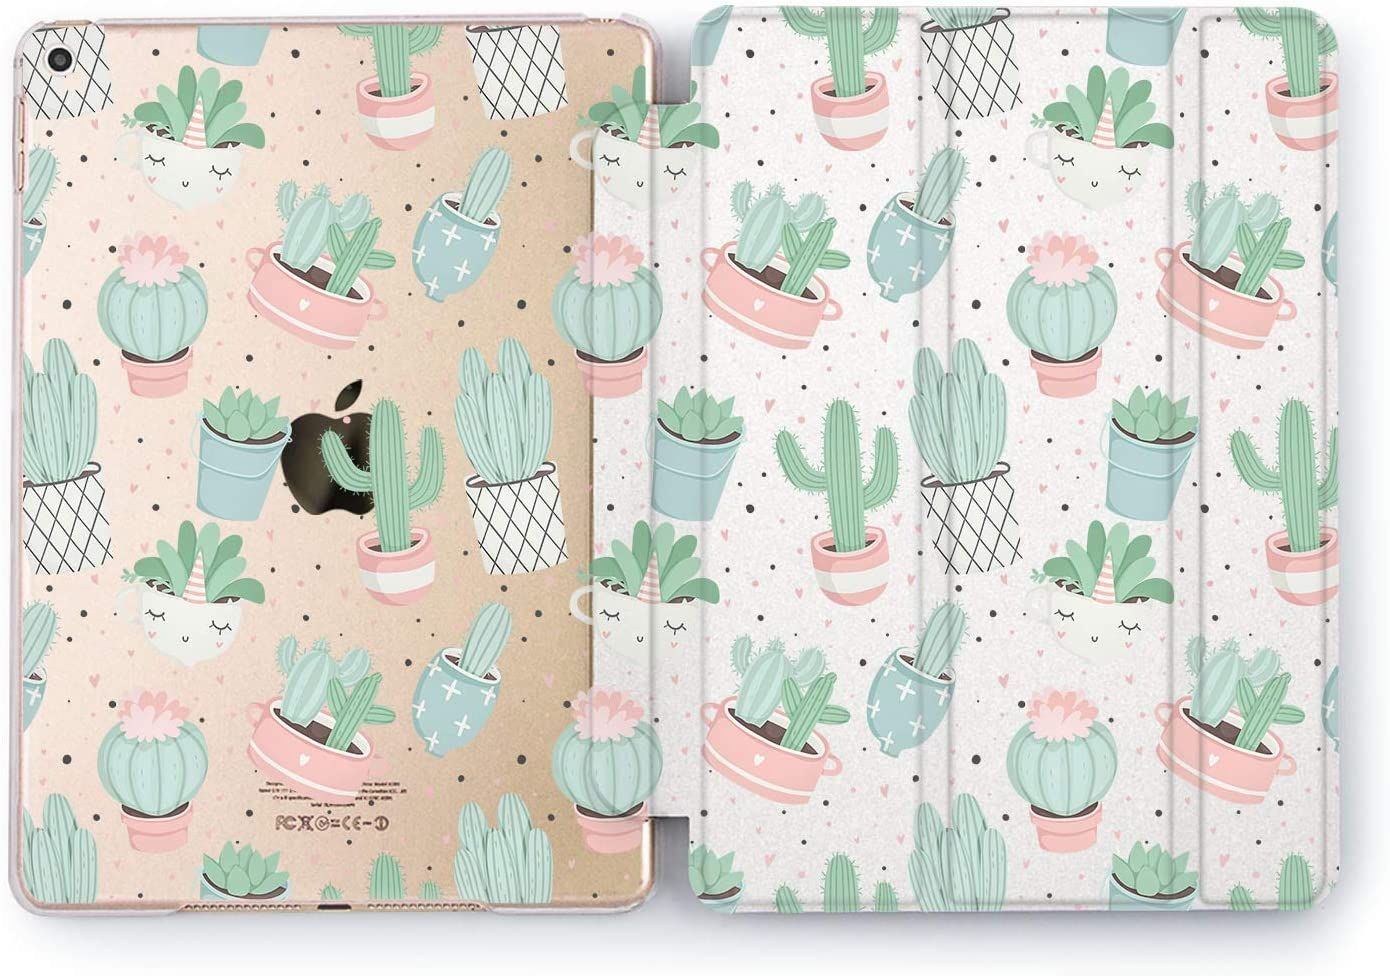 Wonder Wild Cactus Pattern iPad Pro Case 9.7 11 inch Mini 1 2 3 4 Air 2 10.5 12.9 11 10.2 Design 5th 6th Gen Clear Smart Hard Cover Succulent Pot Nature Greenery Indoor Grow Tropical Cacti Cute